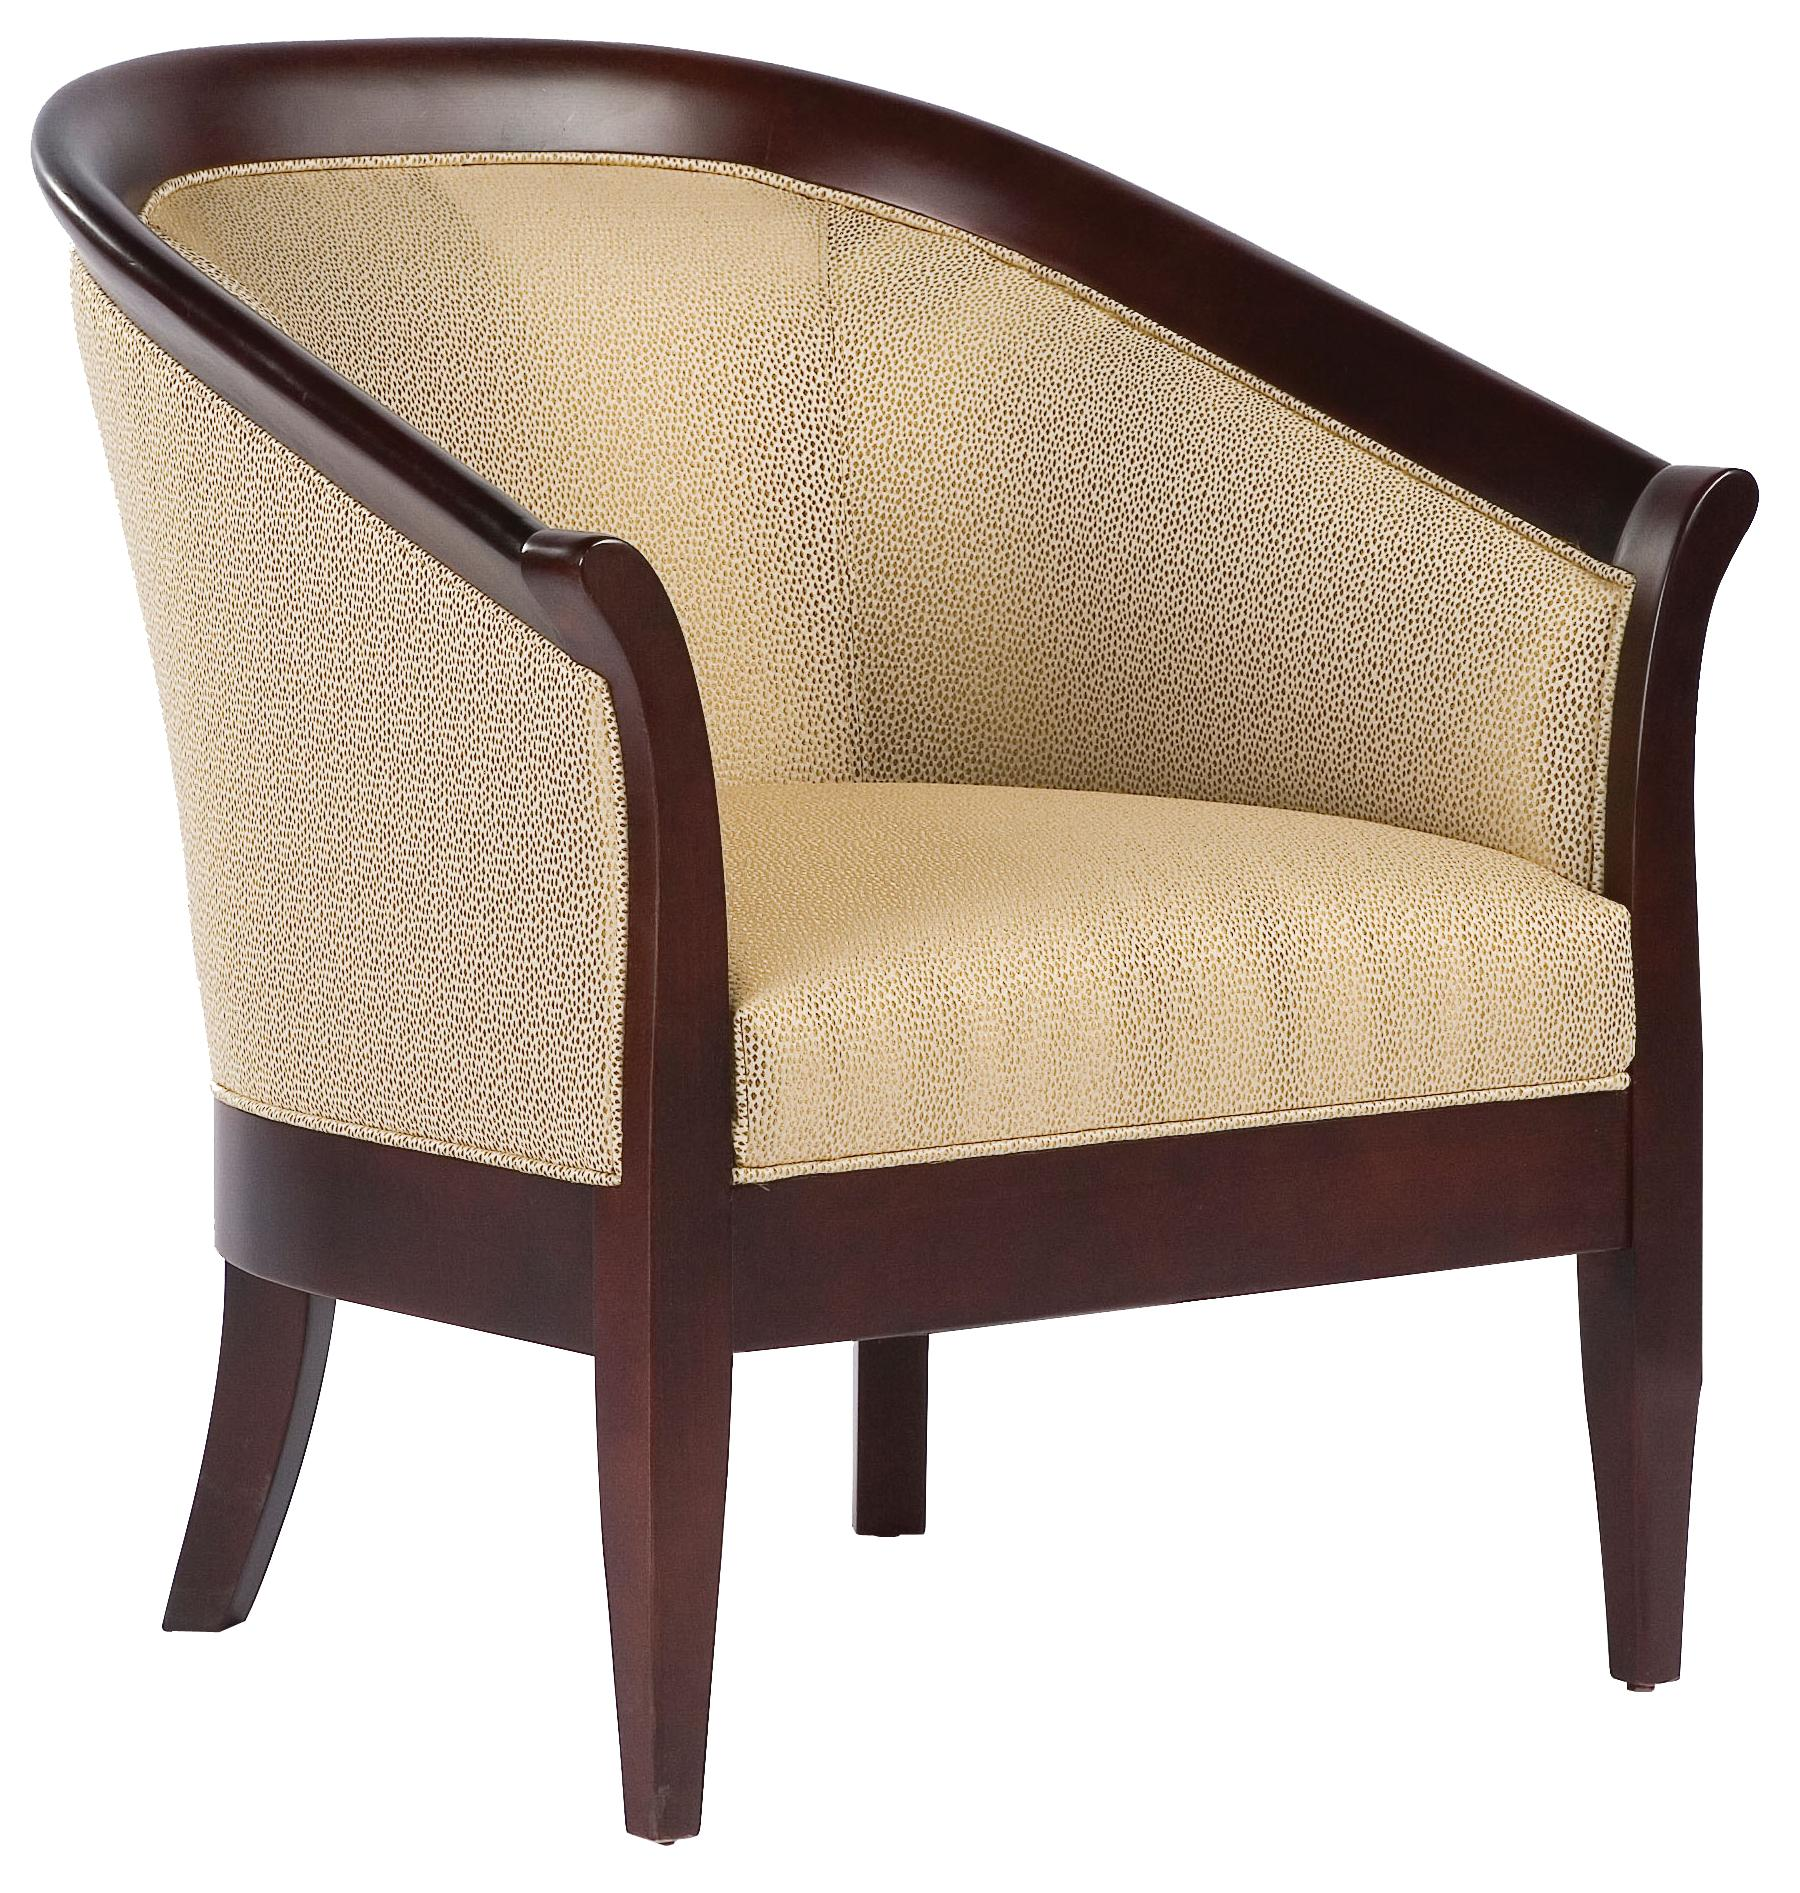 Fairfield Chairs High-Arm Wrap-Around Chair - Item Number: 6089-01